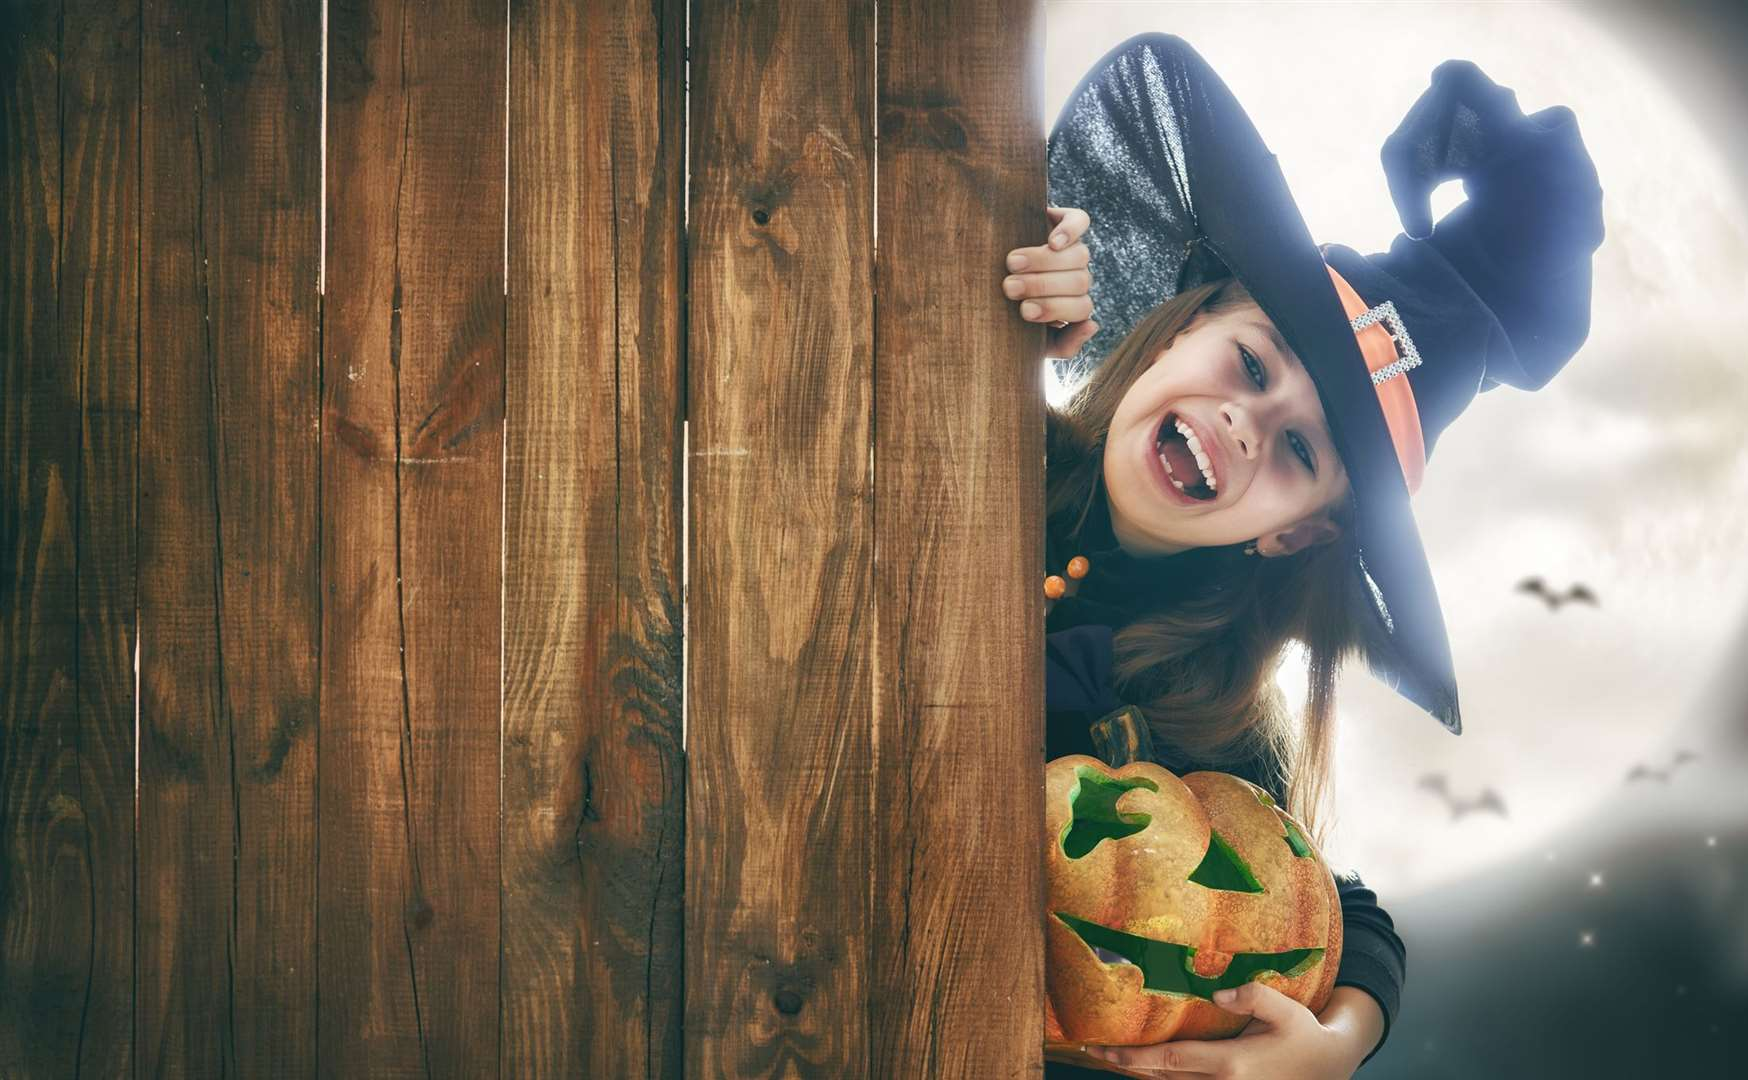 Bring trick or treating indoors this year with a room-to-room scavenger hunt